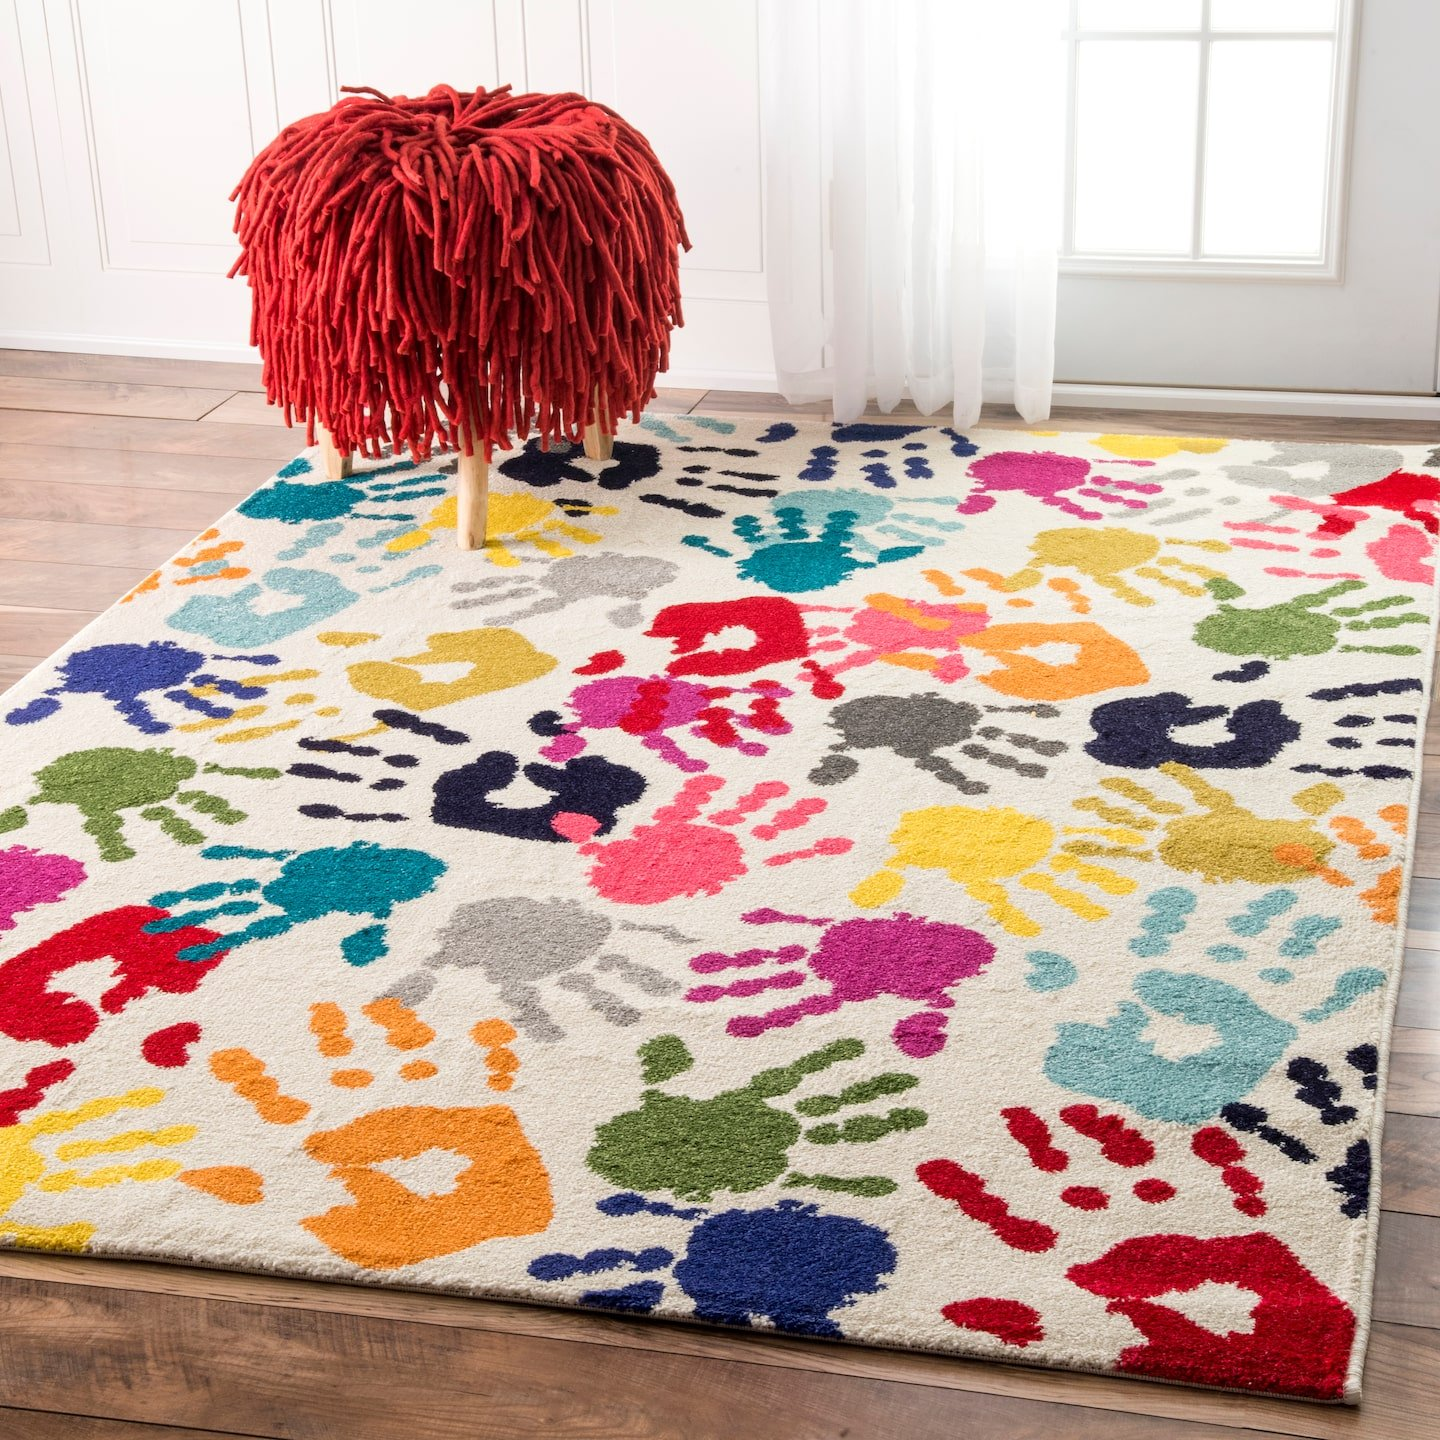 nuLOOM Handprint Collage Kids Nursery Area Rugs, 5' x 8', Multicolor